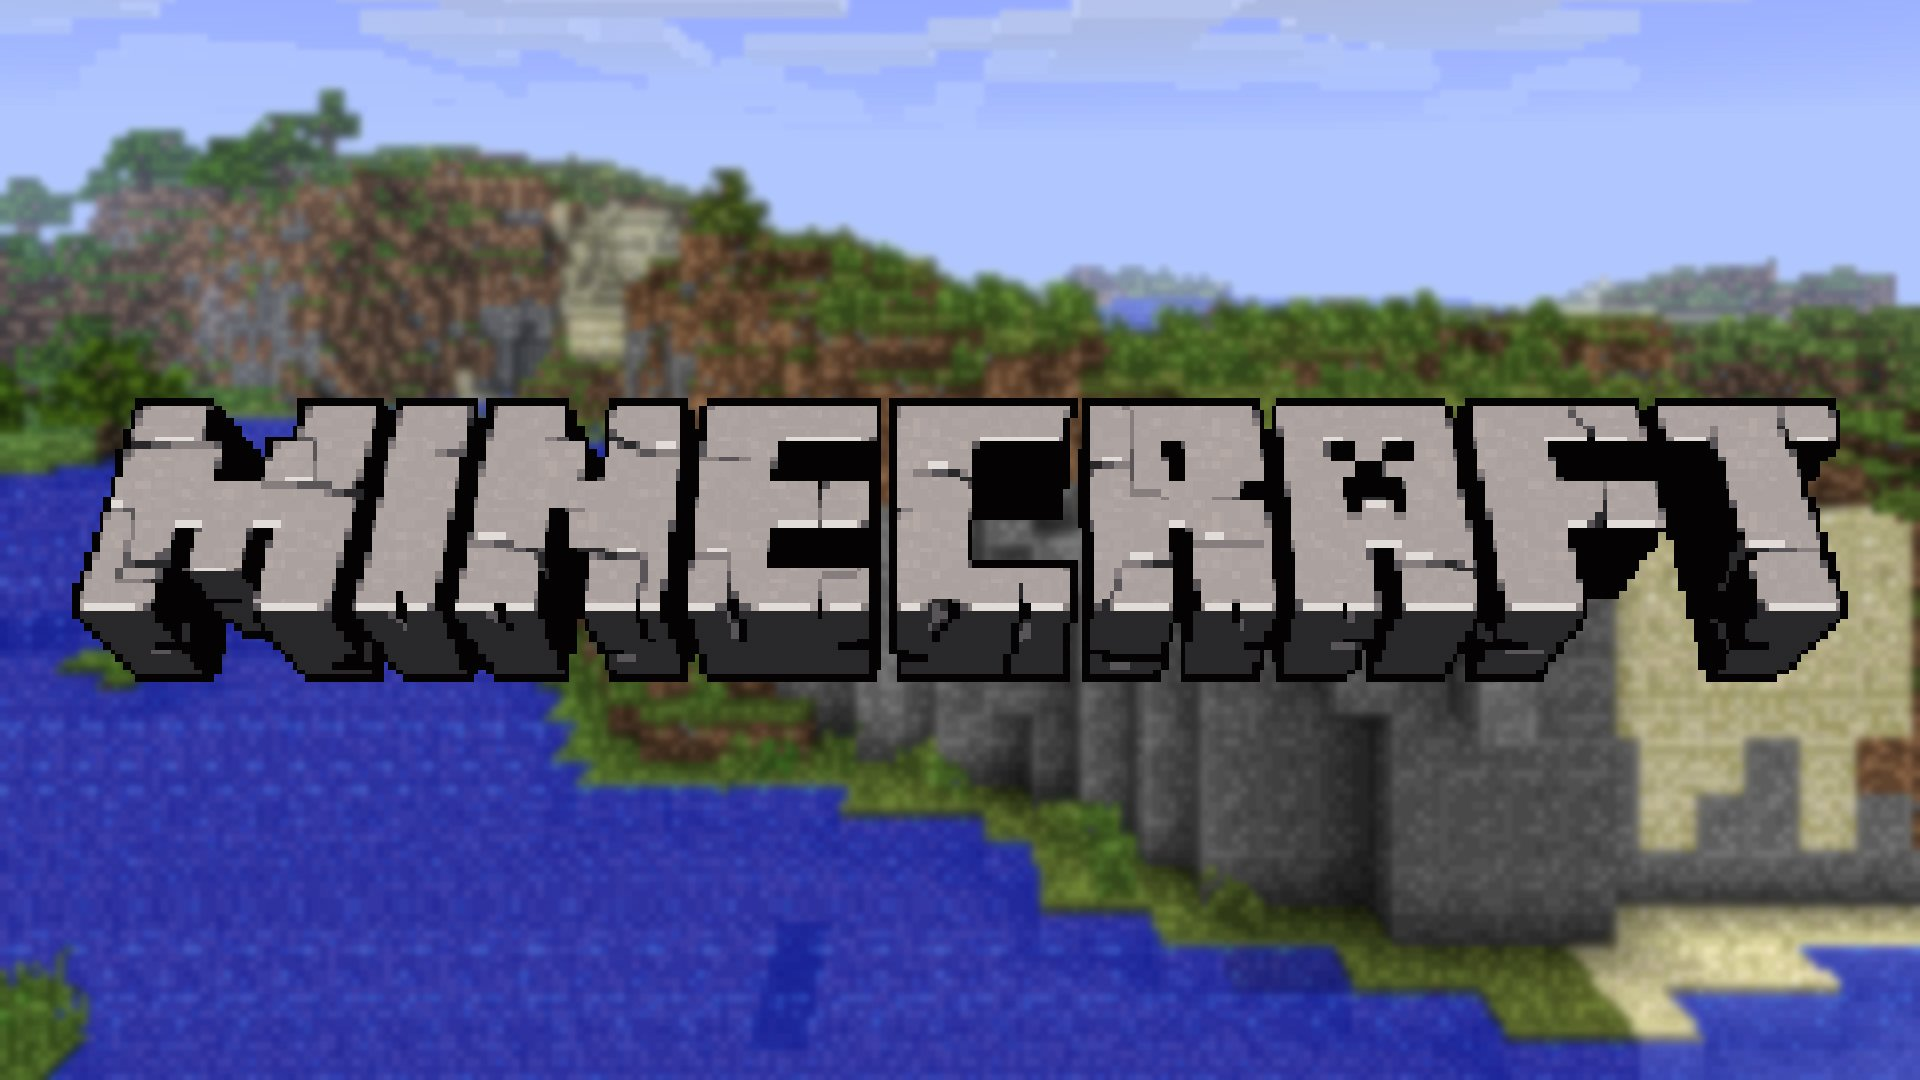 Minecraft 1.16.4 Pre-Release 2: Mostly Bug Fixes And Some Changes To The New Social Interaction Screen